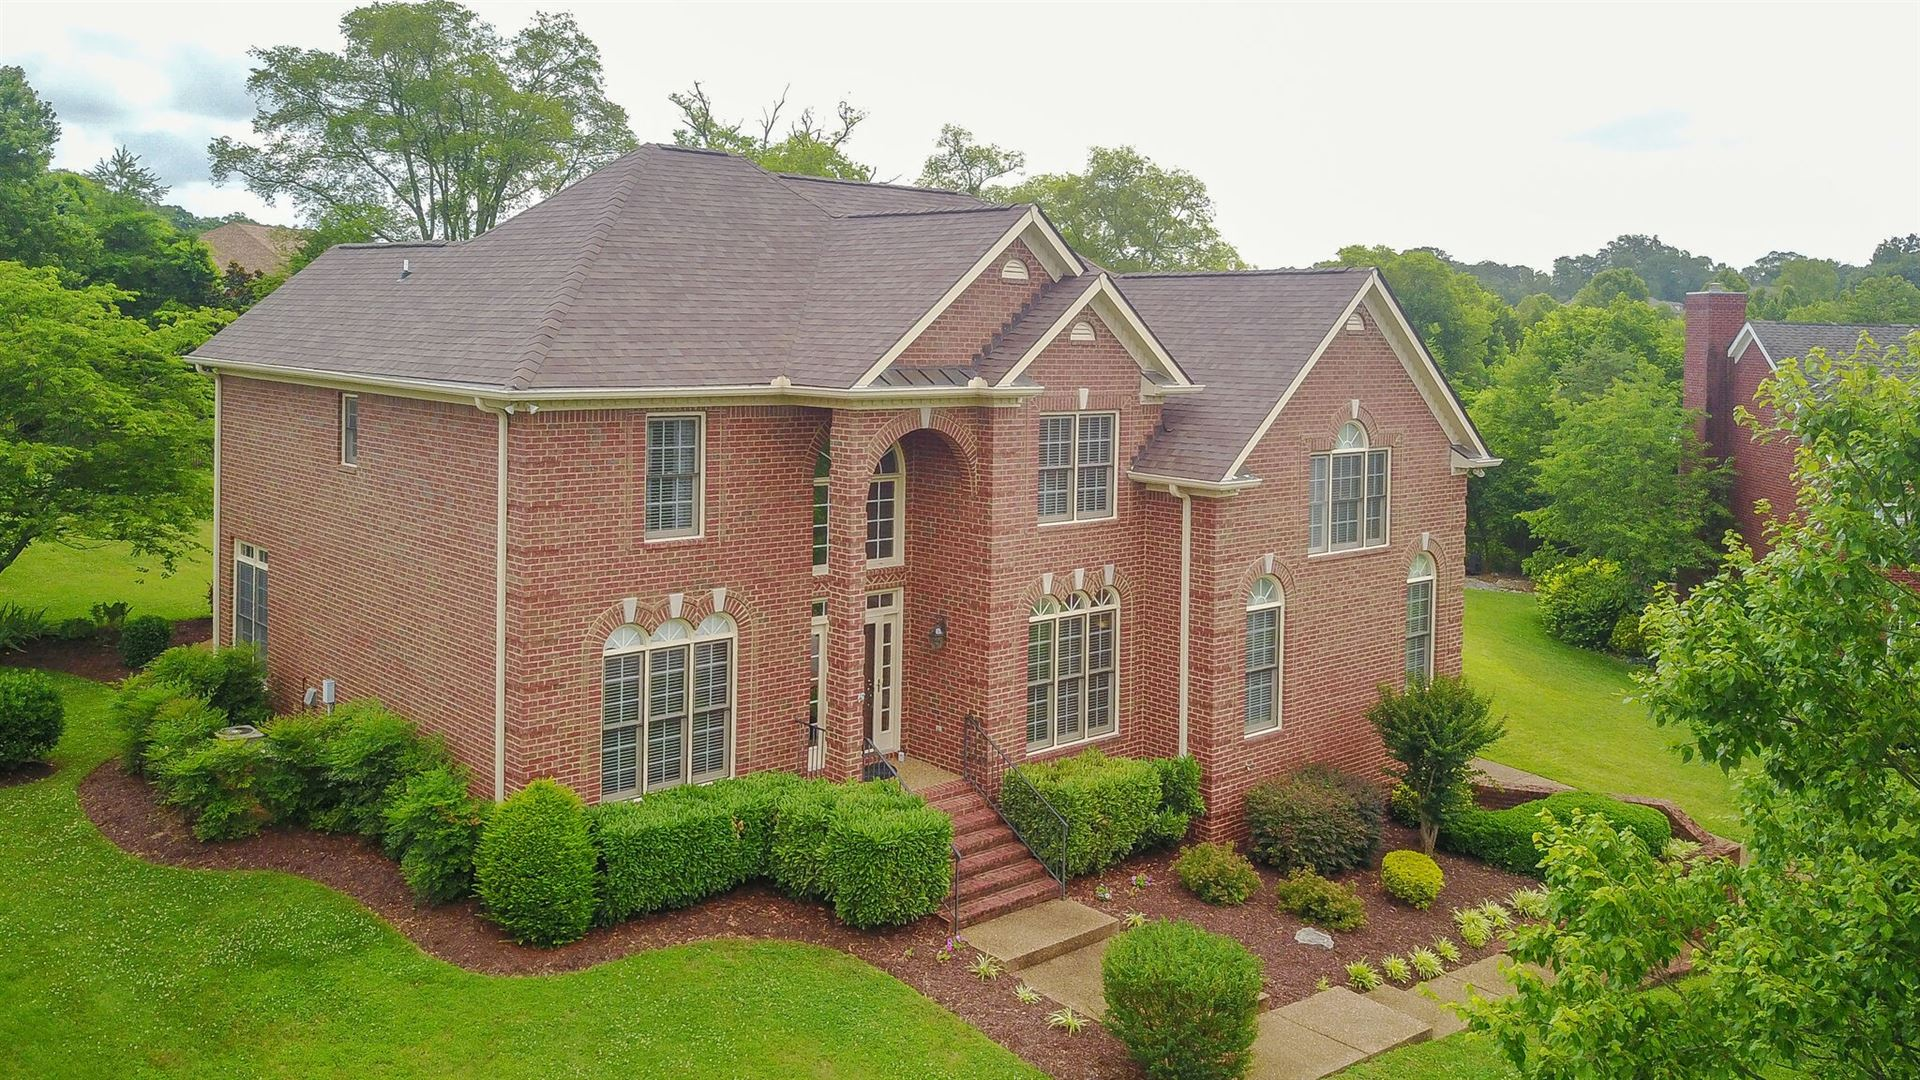 Photo of 602 Fountainbrooke Ct, Brentwood, TN 37027 (MLS # 2163670)